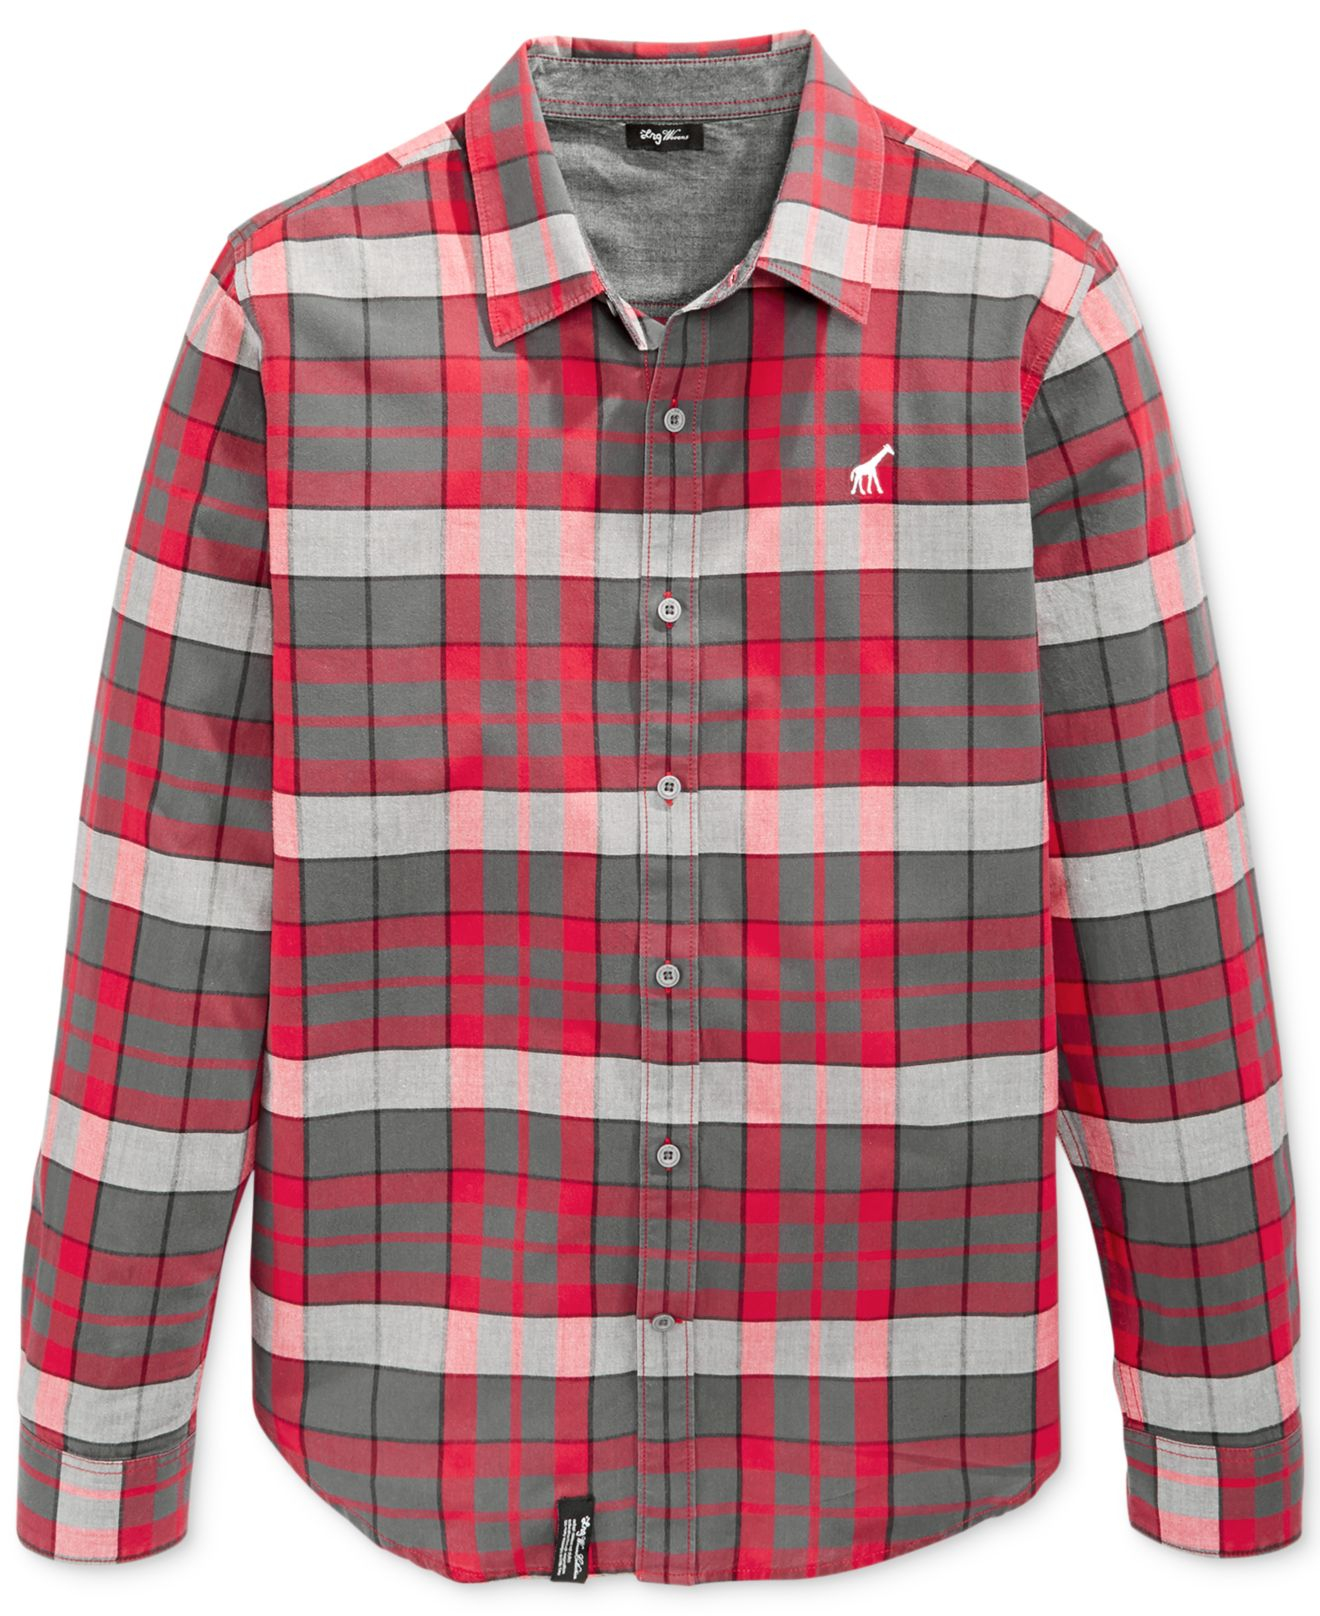 Lrg Big And Tall Rock Bottom Plaid Flannel Shirt In Red